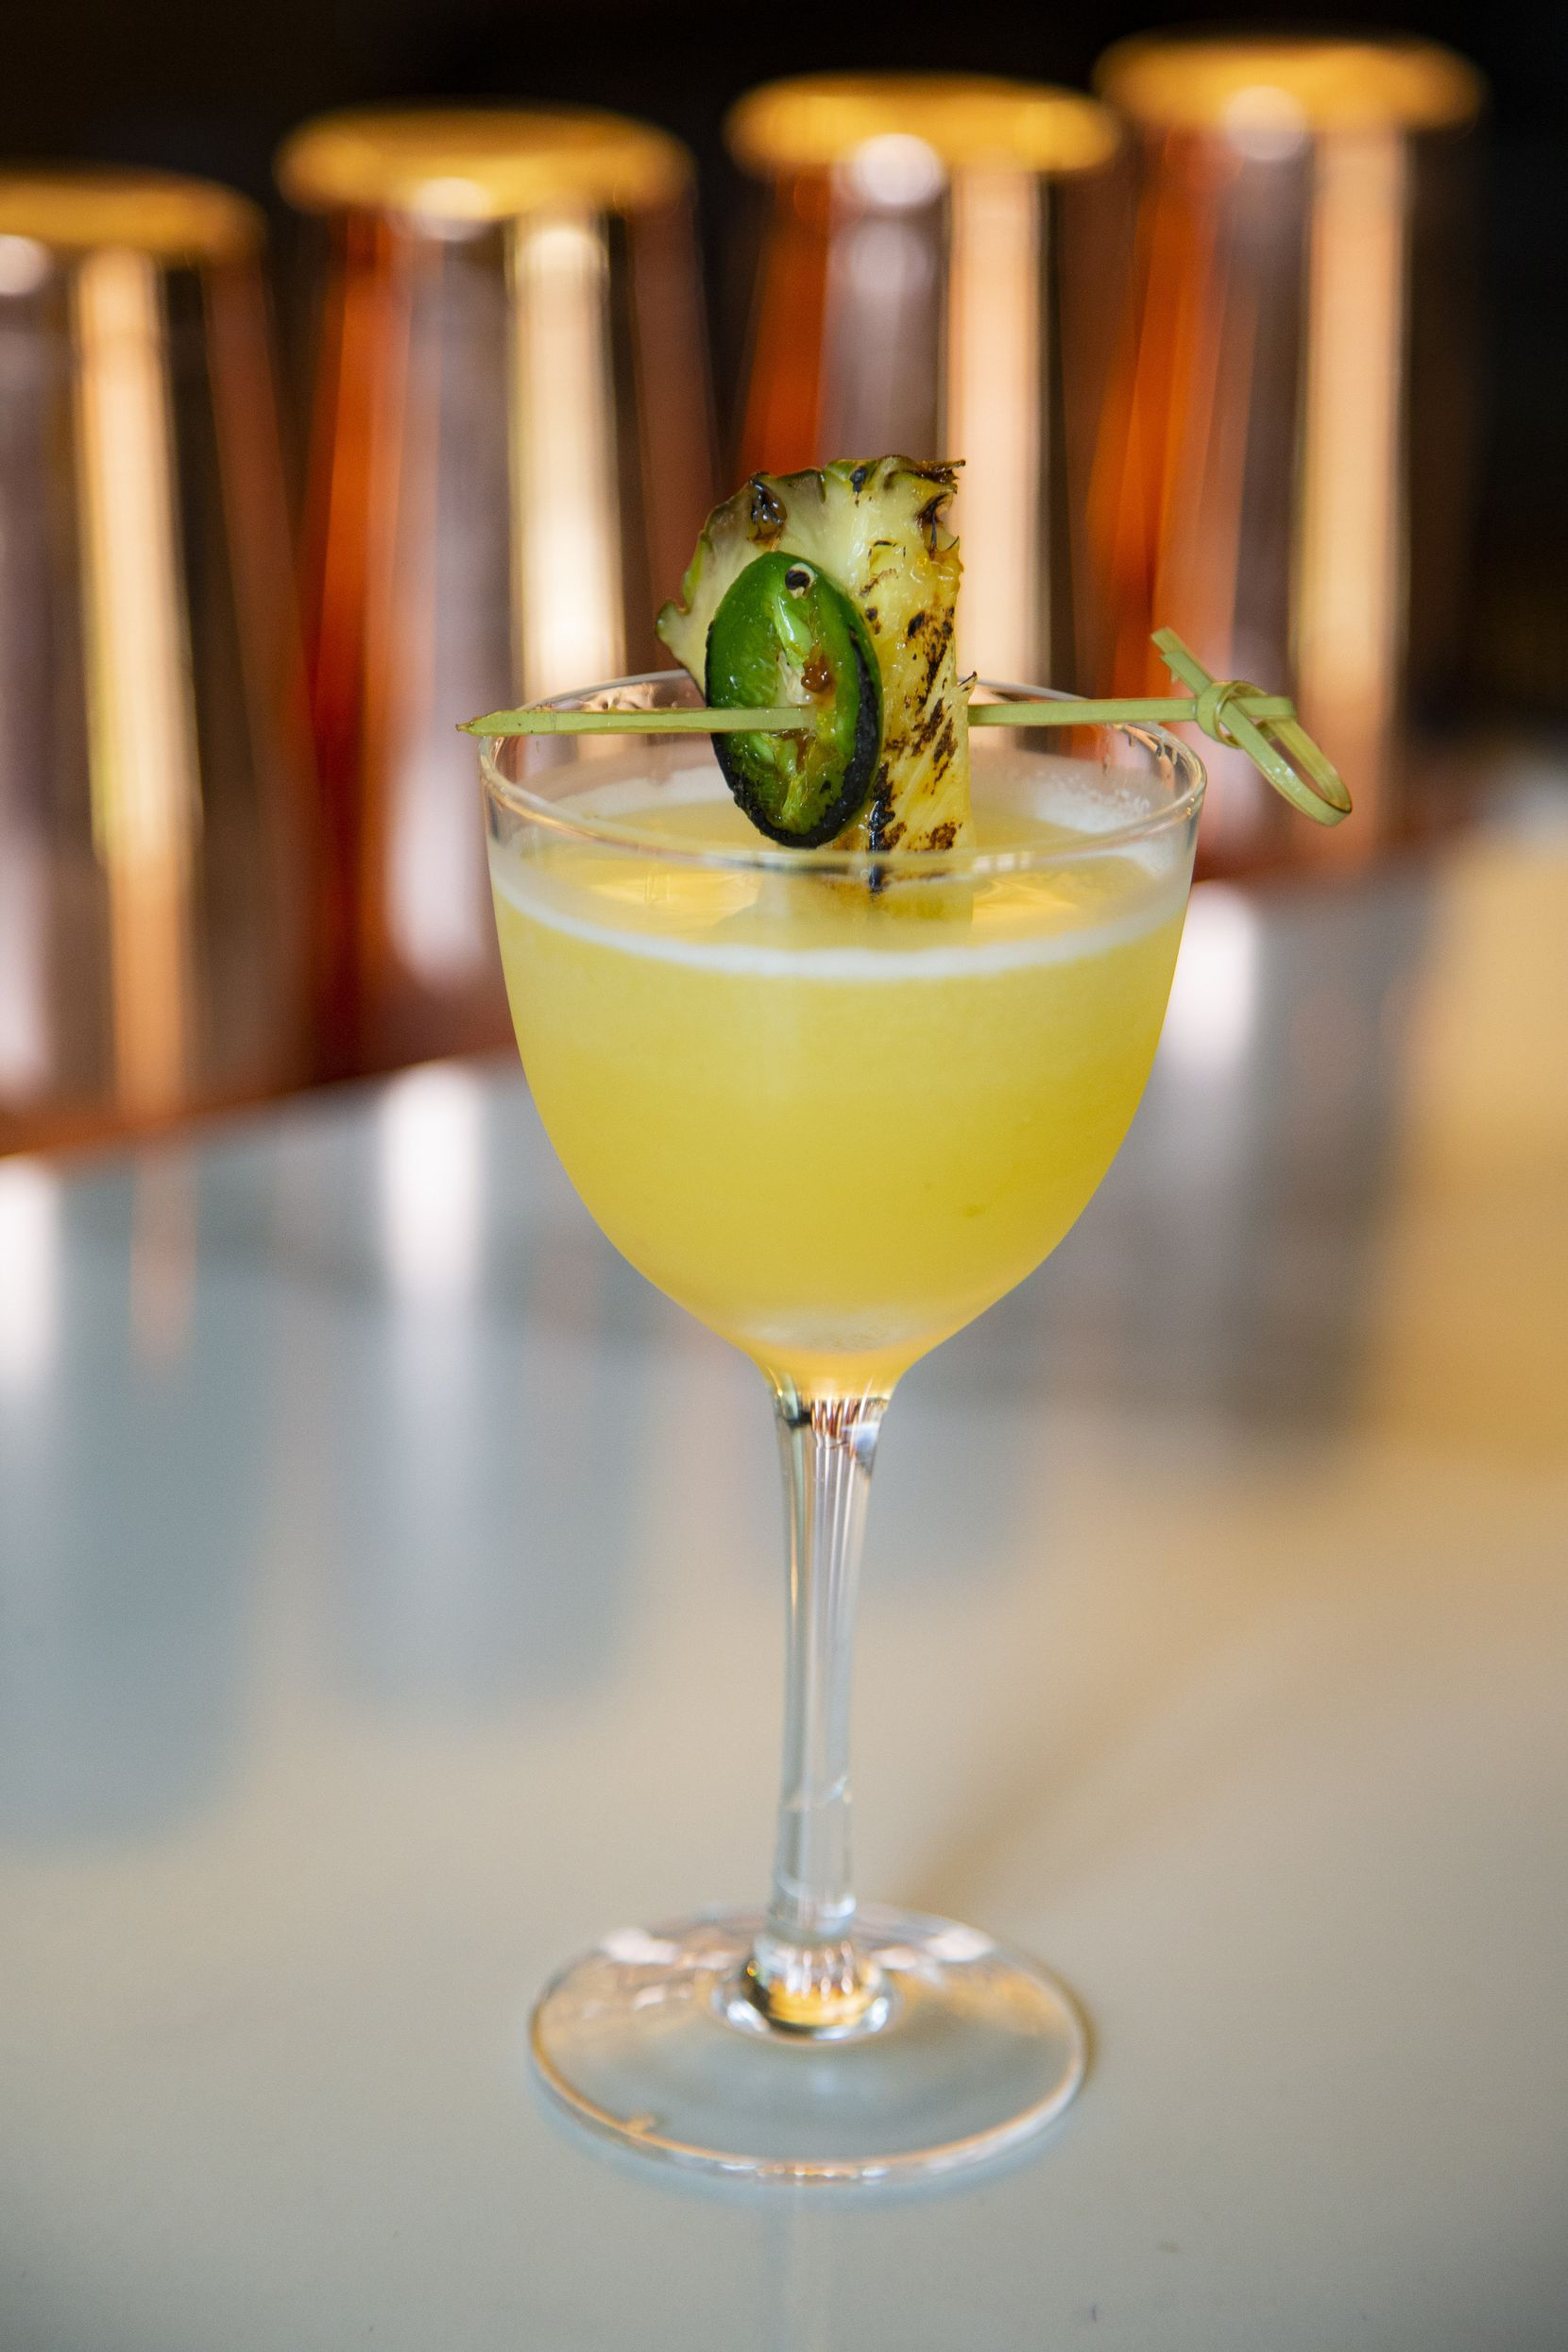 """An """"Alli Dee"""" cocktail, made primarily with tequila, pineapple and lime juice garnished with a torched pineapple slice and jalapeño at Side Saddle in the Fort Worth Stockyards."""